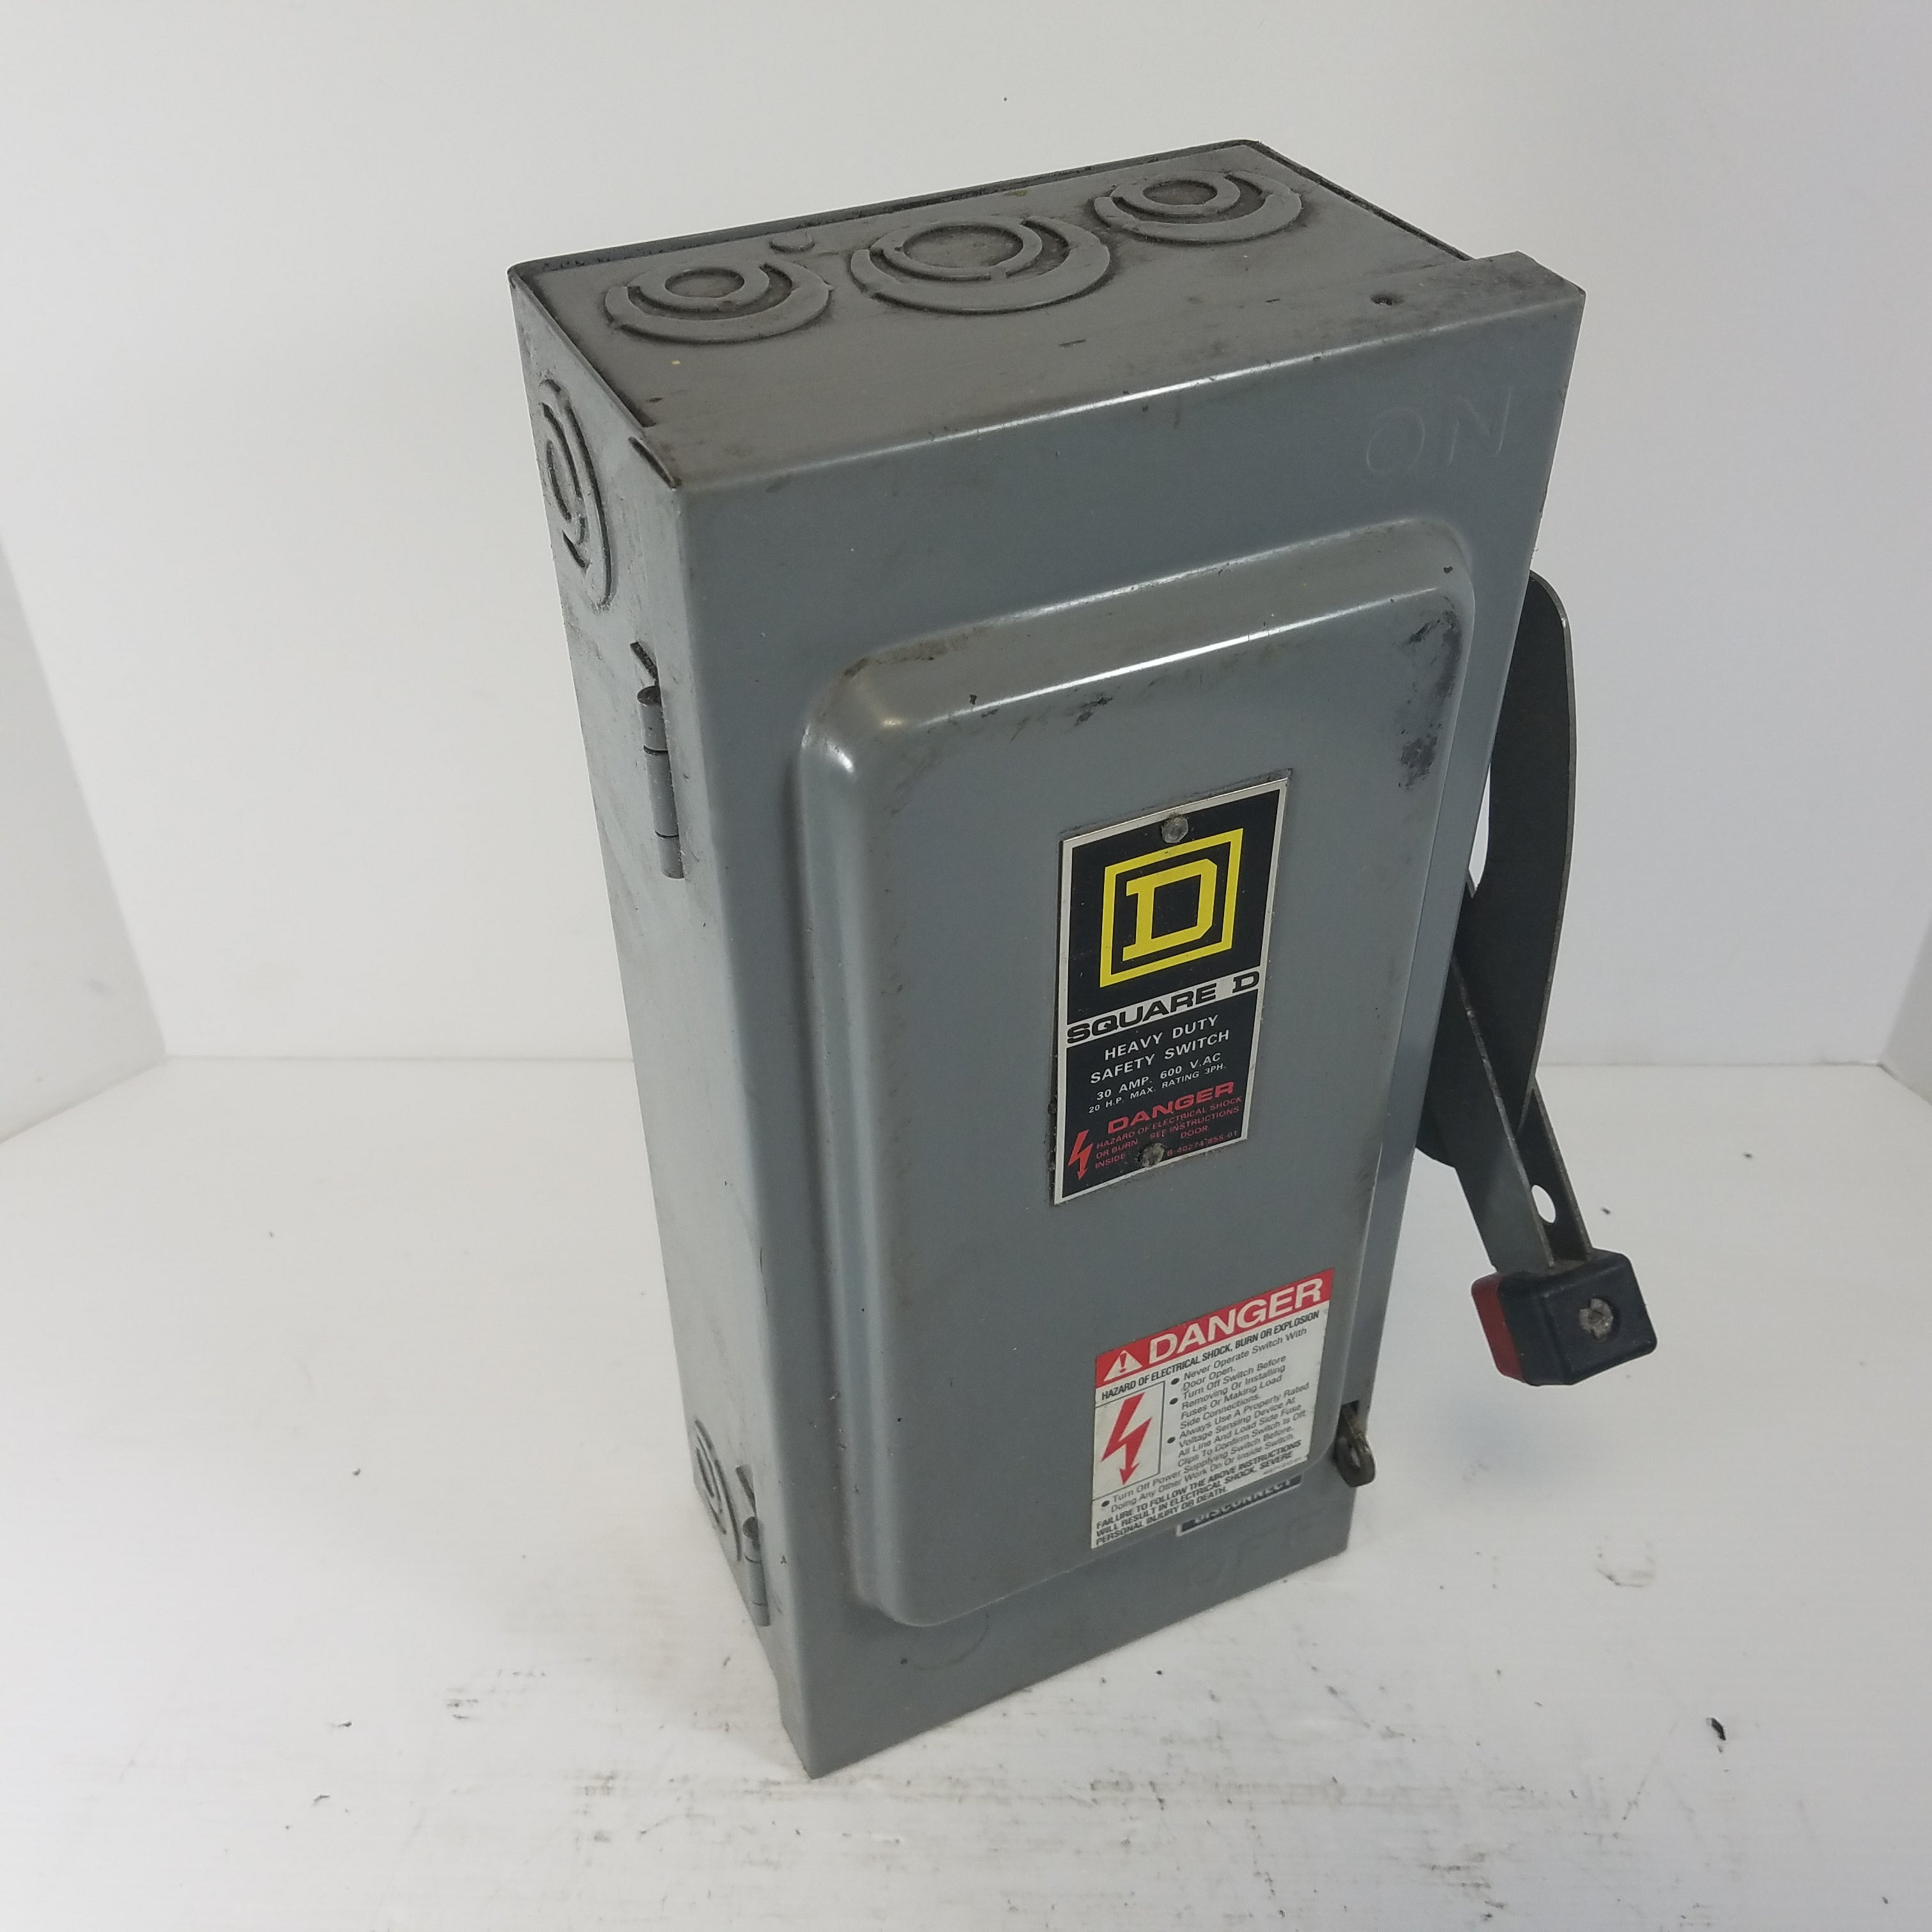 square d h361 heavy duty safety switch with fuses metal logics, incmetal logics, inc